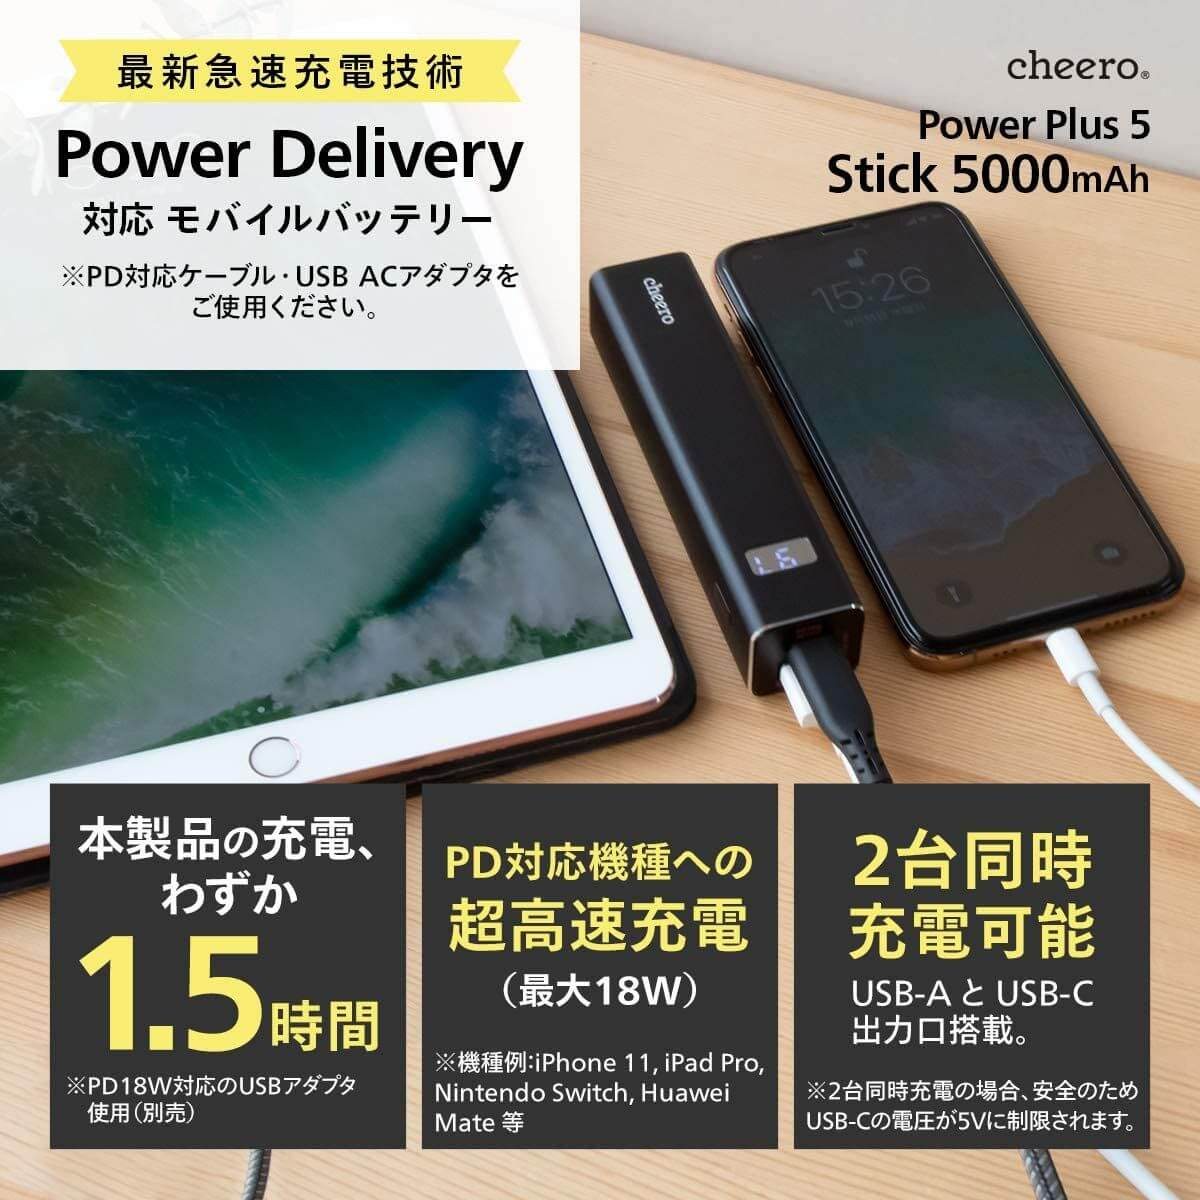 cheero Power Plus 5 Stick 5000mAh PD対応